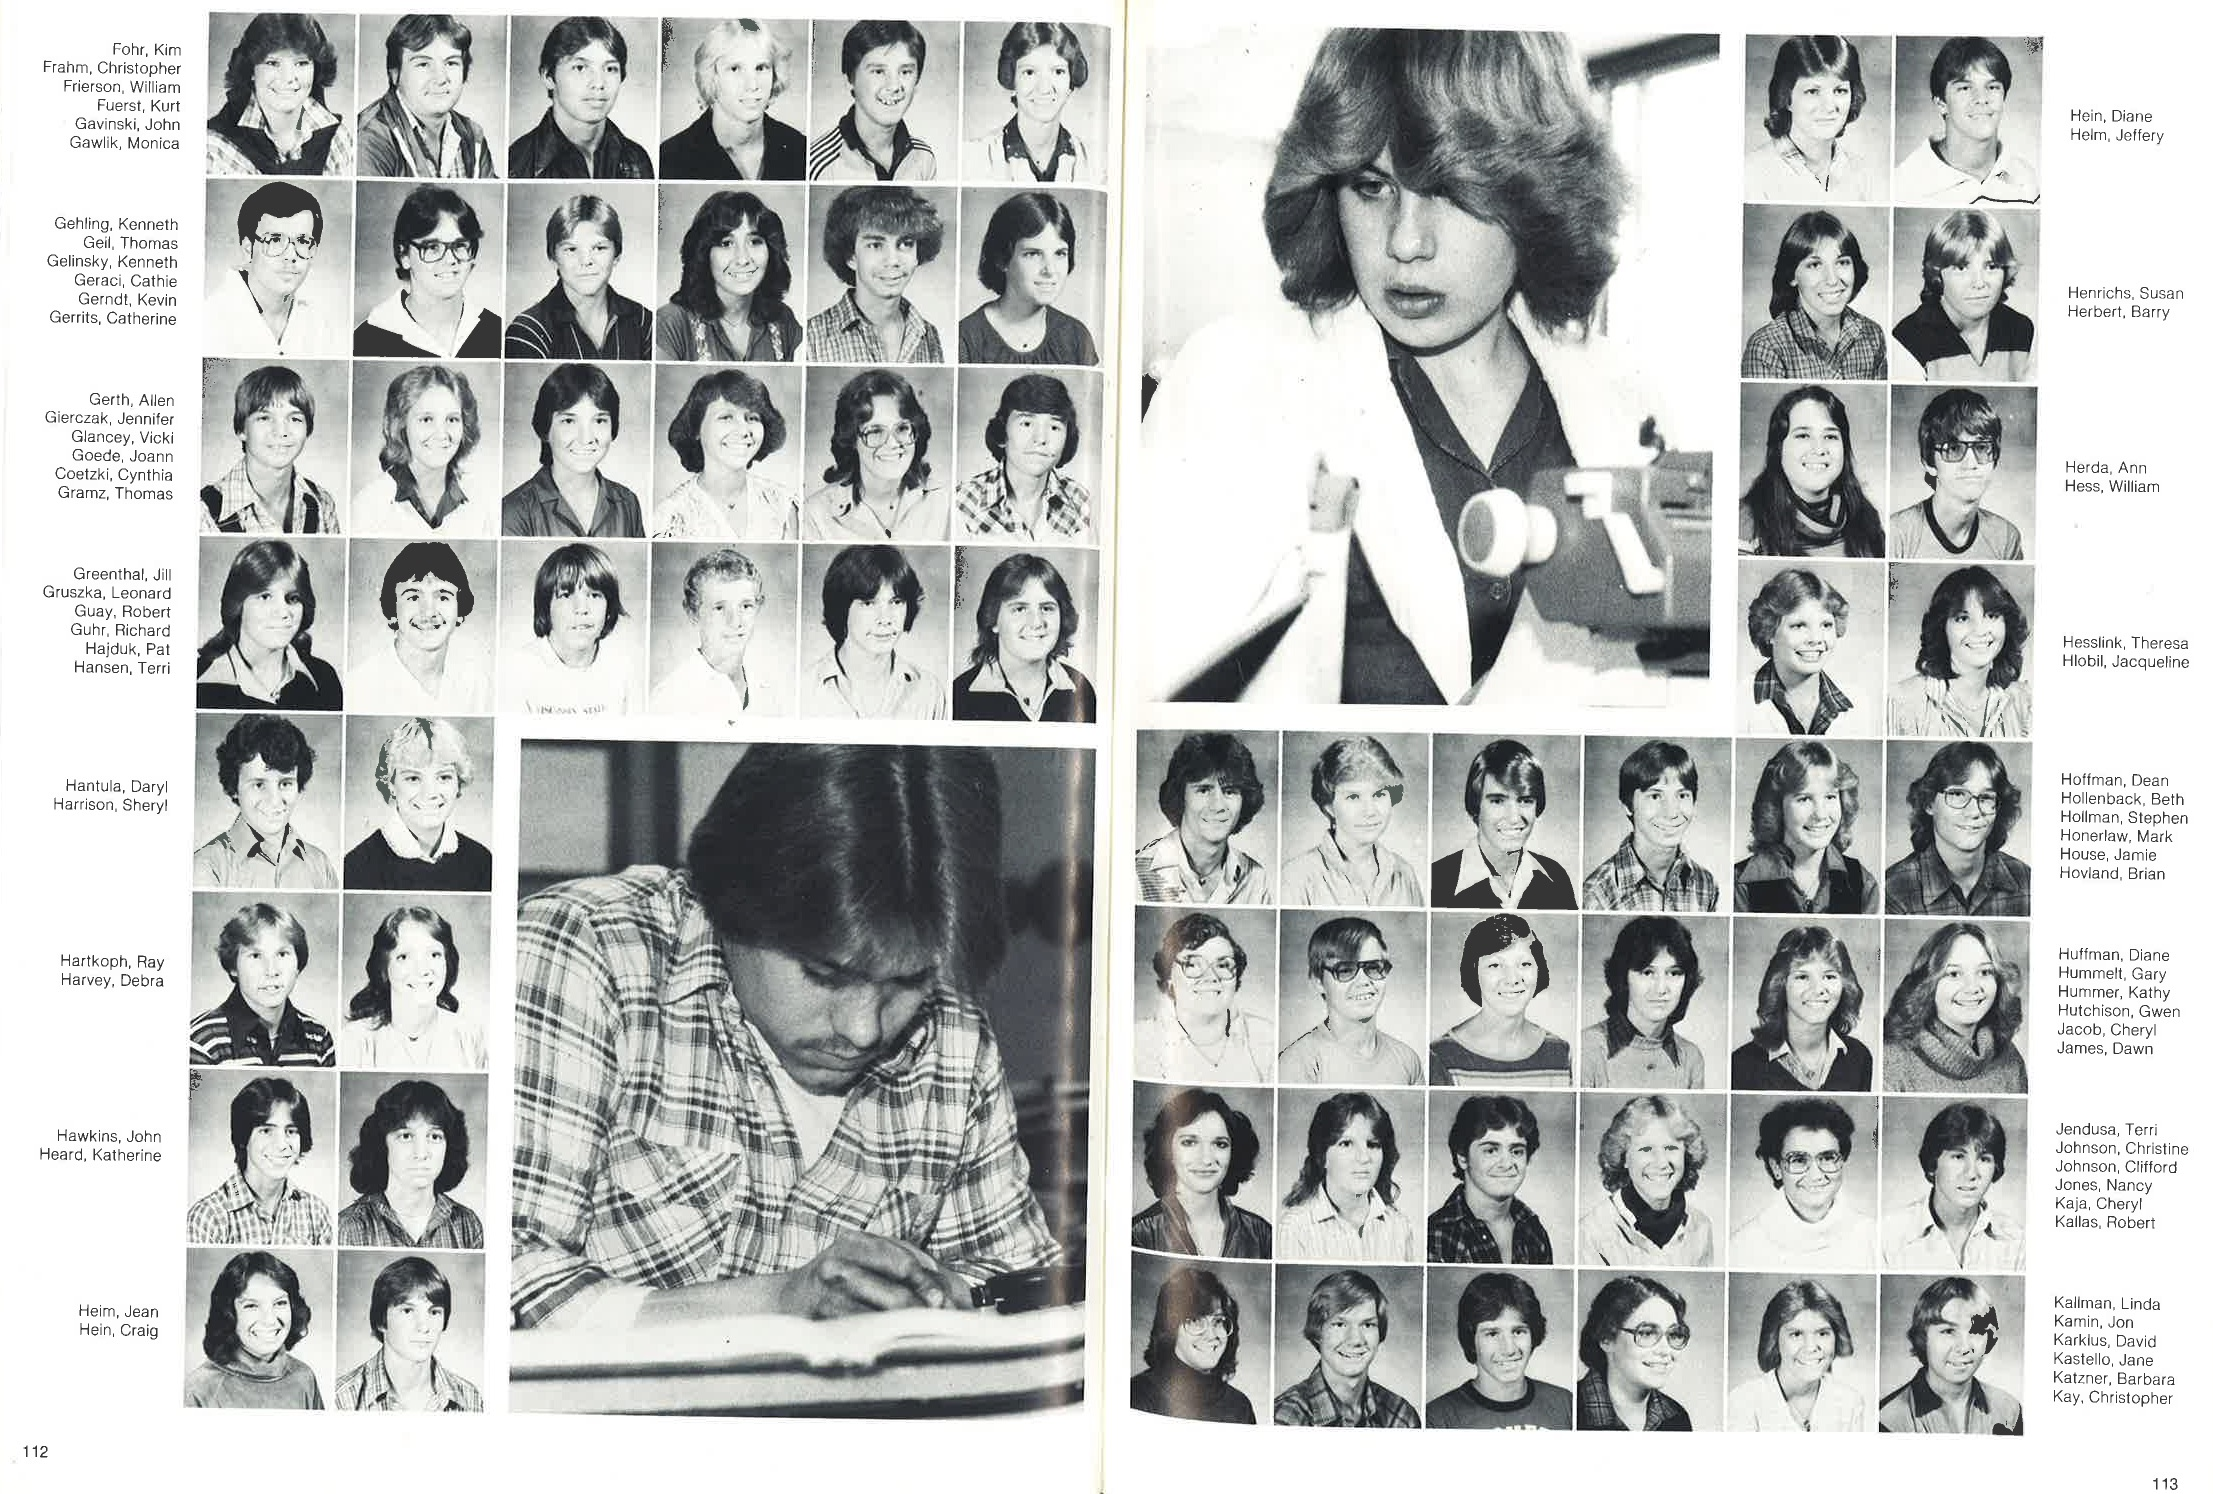 1981_Yearbook_112.jpg